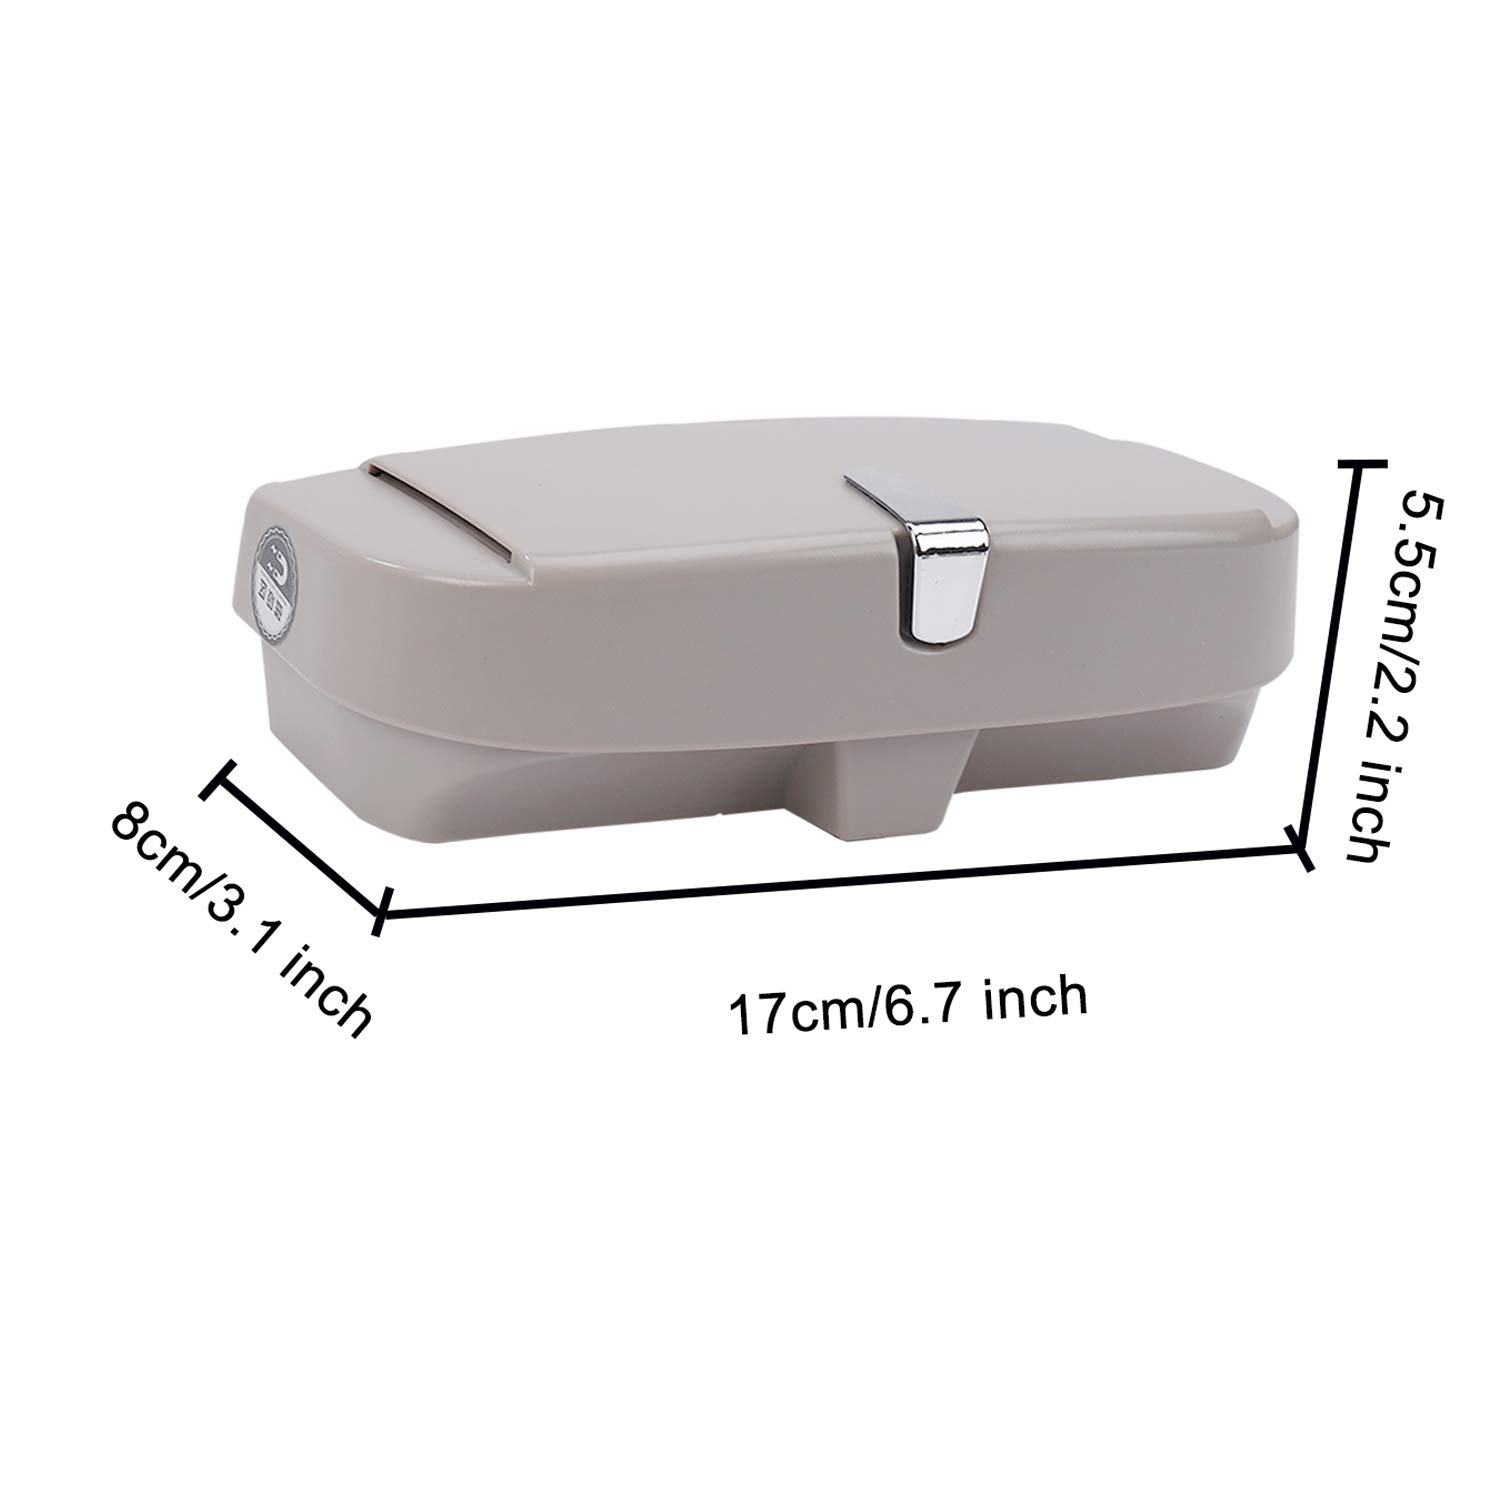 MengH-SHOP Car Glasses Case Universal Sunglasses Storage Box with Magnetic Suction Area and Cards Insertion Area Multifunctional Eyeglasses Organizer for Sun Visor Gray